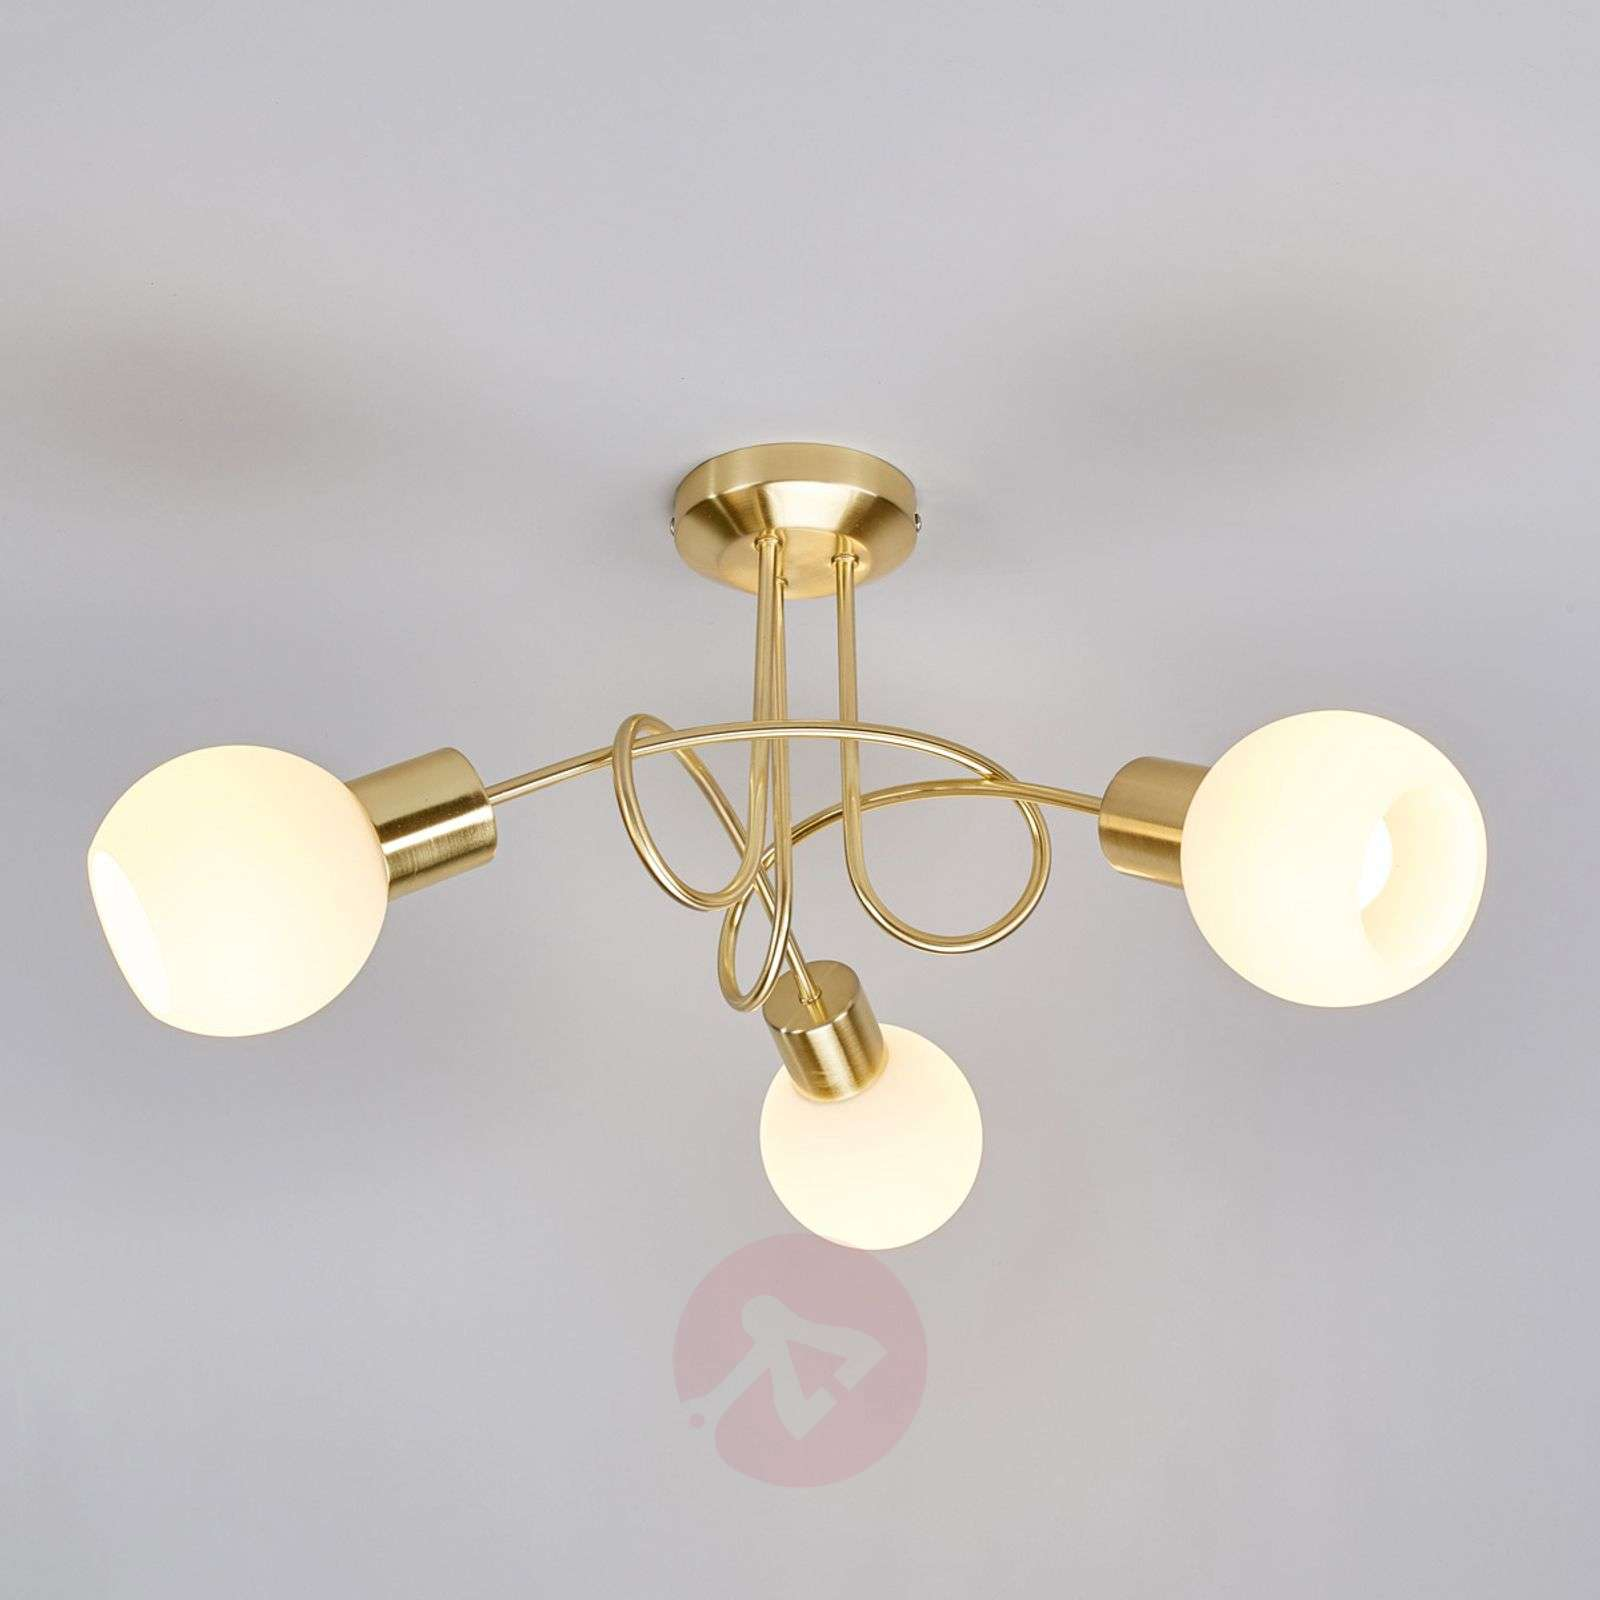 Brass coloured led ceiling light elaina 3 bulb lights brass coloured led ceiling light elaina 3 bulb 9620030 01 aloadofball Image collections